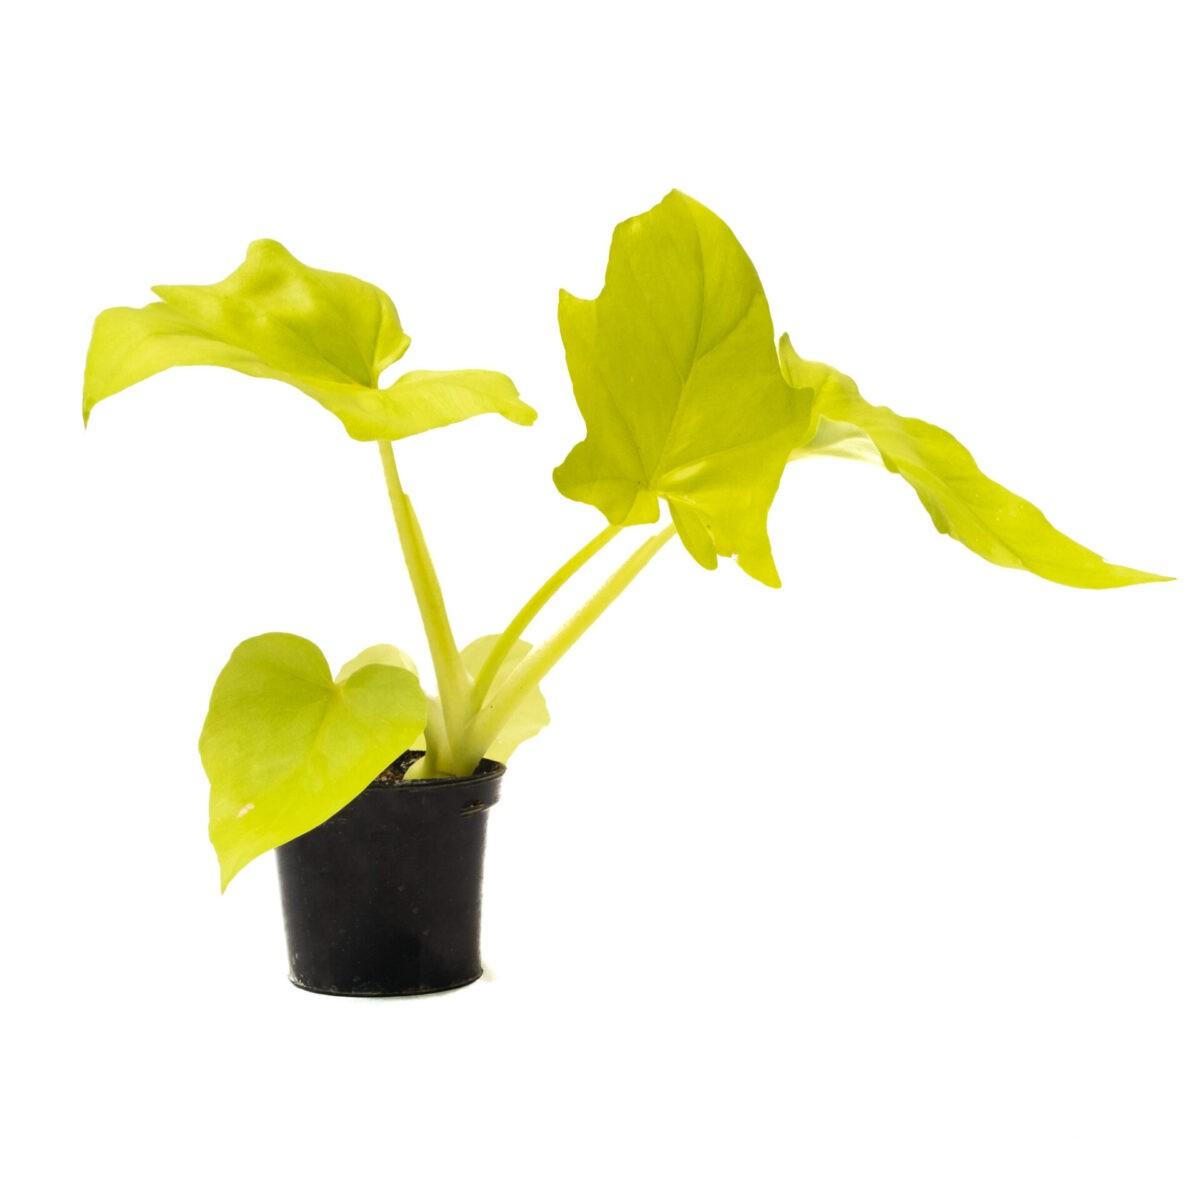 Philodendron Selloum golden available for Bangalore delivery. Low light or indoor plants